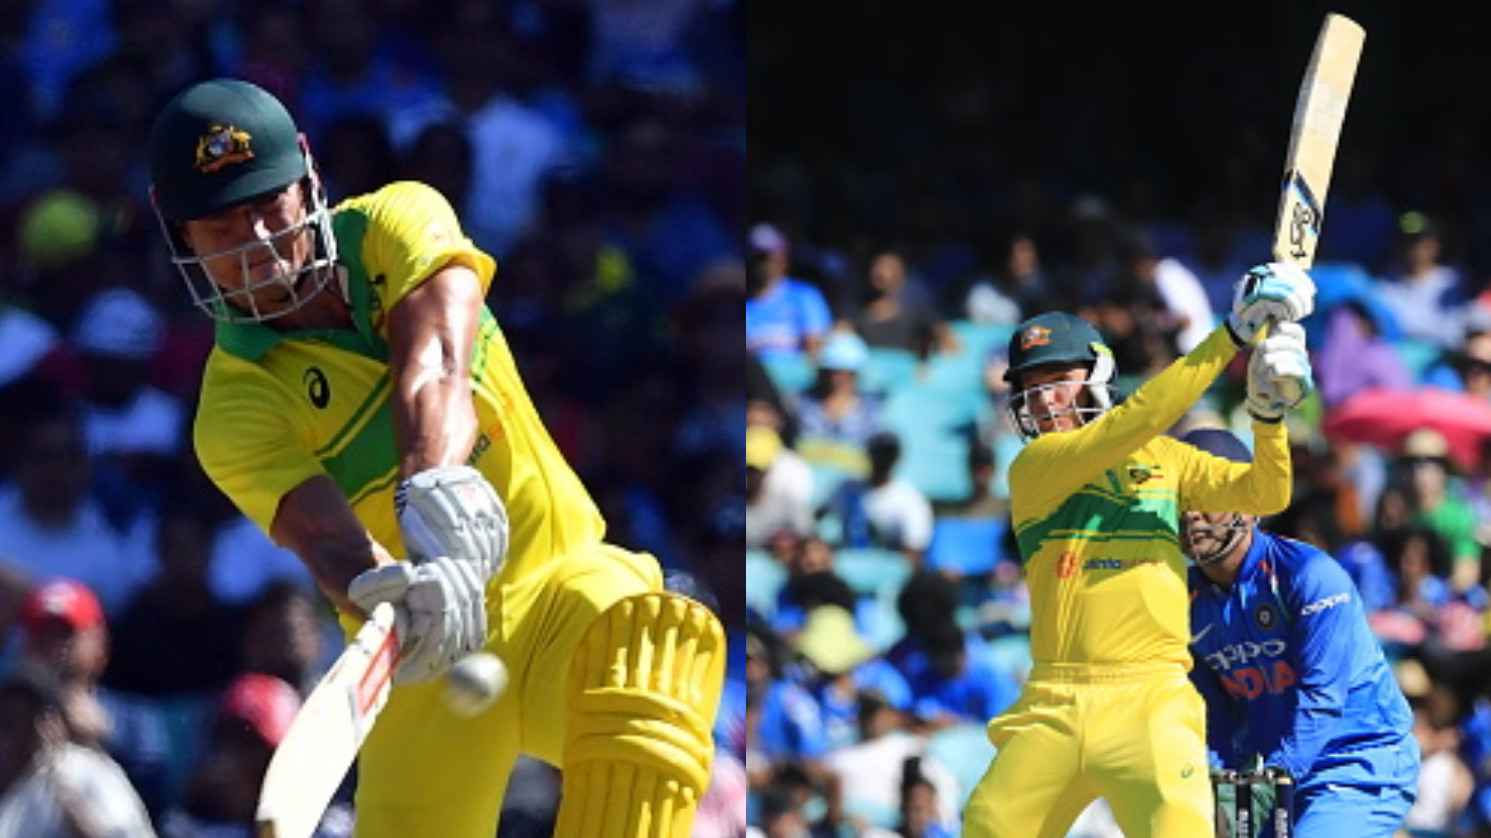 AUS v IND 2018-19: 1st ODI - Handscomb's 73 and Stoinis death overs onslaught takes Australia to 288/5